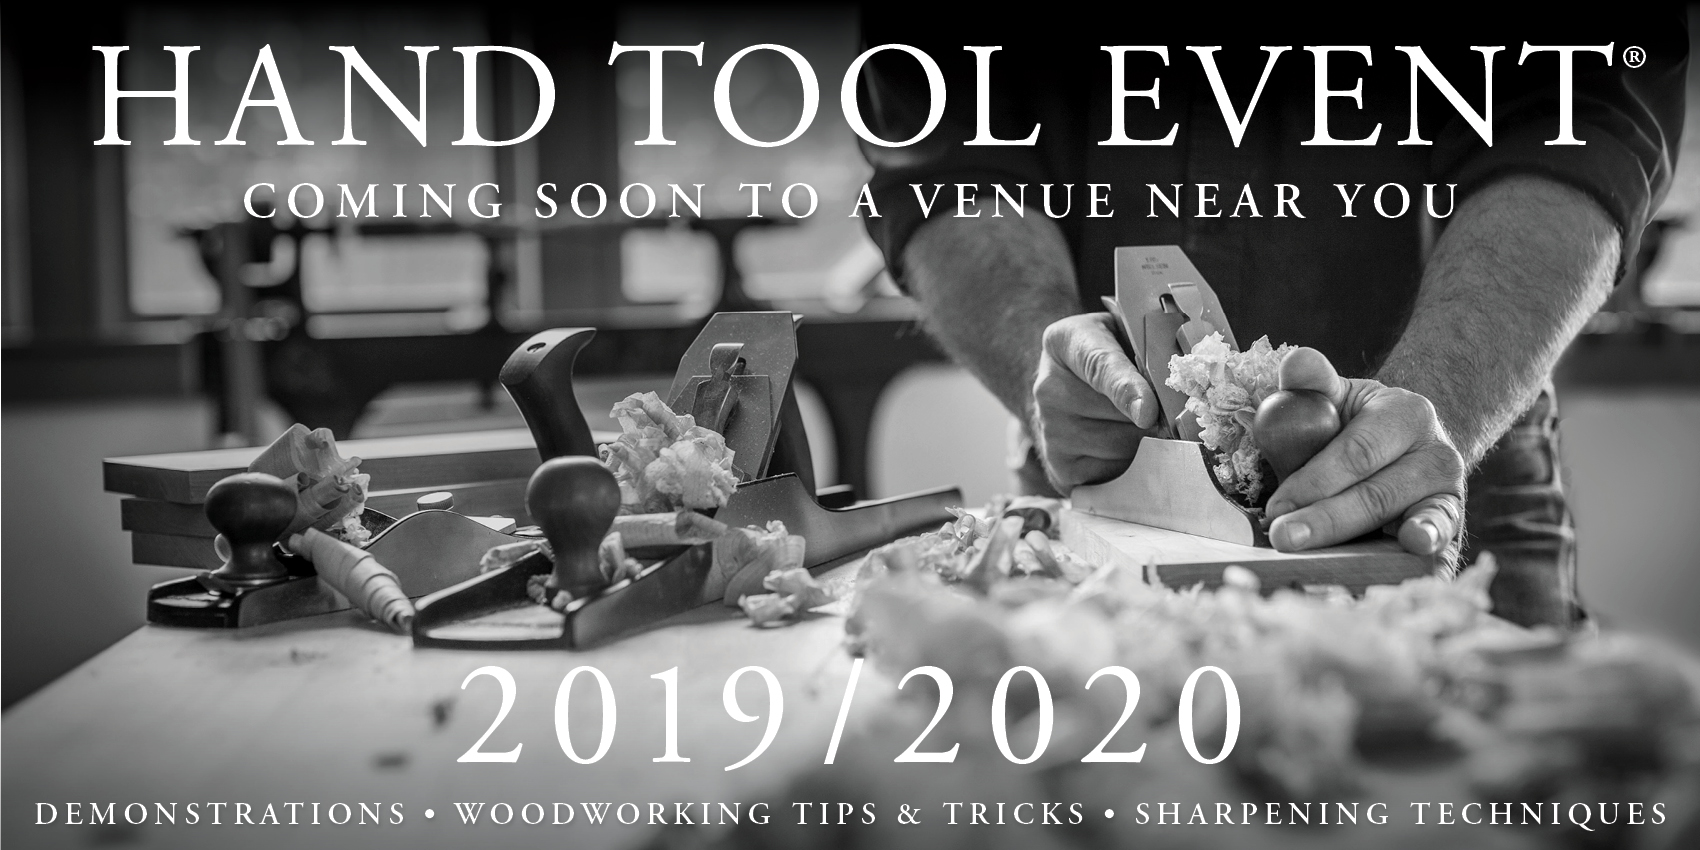 2019-2020 Hand Tool Event Season Schedule